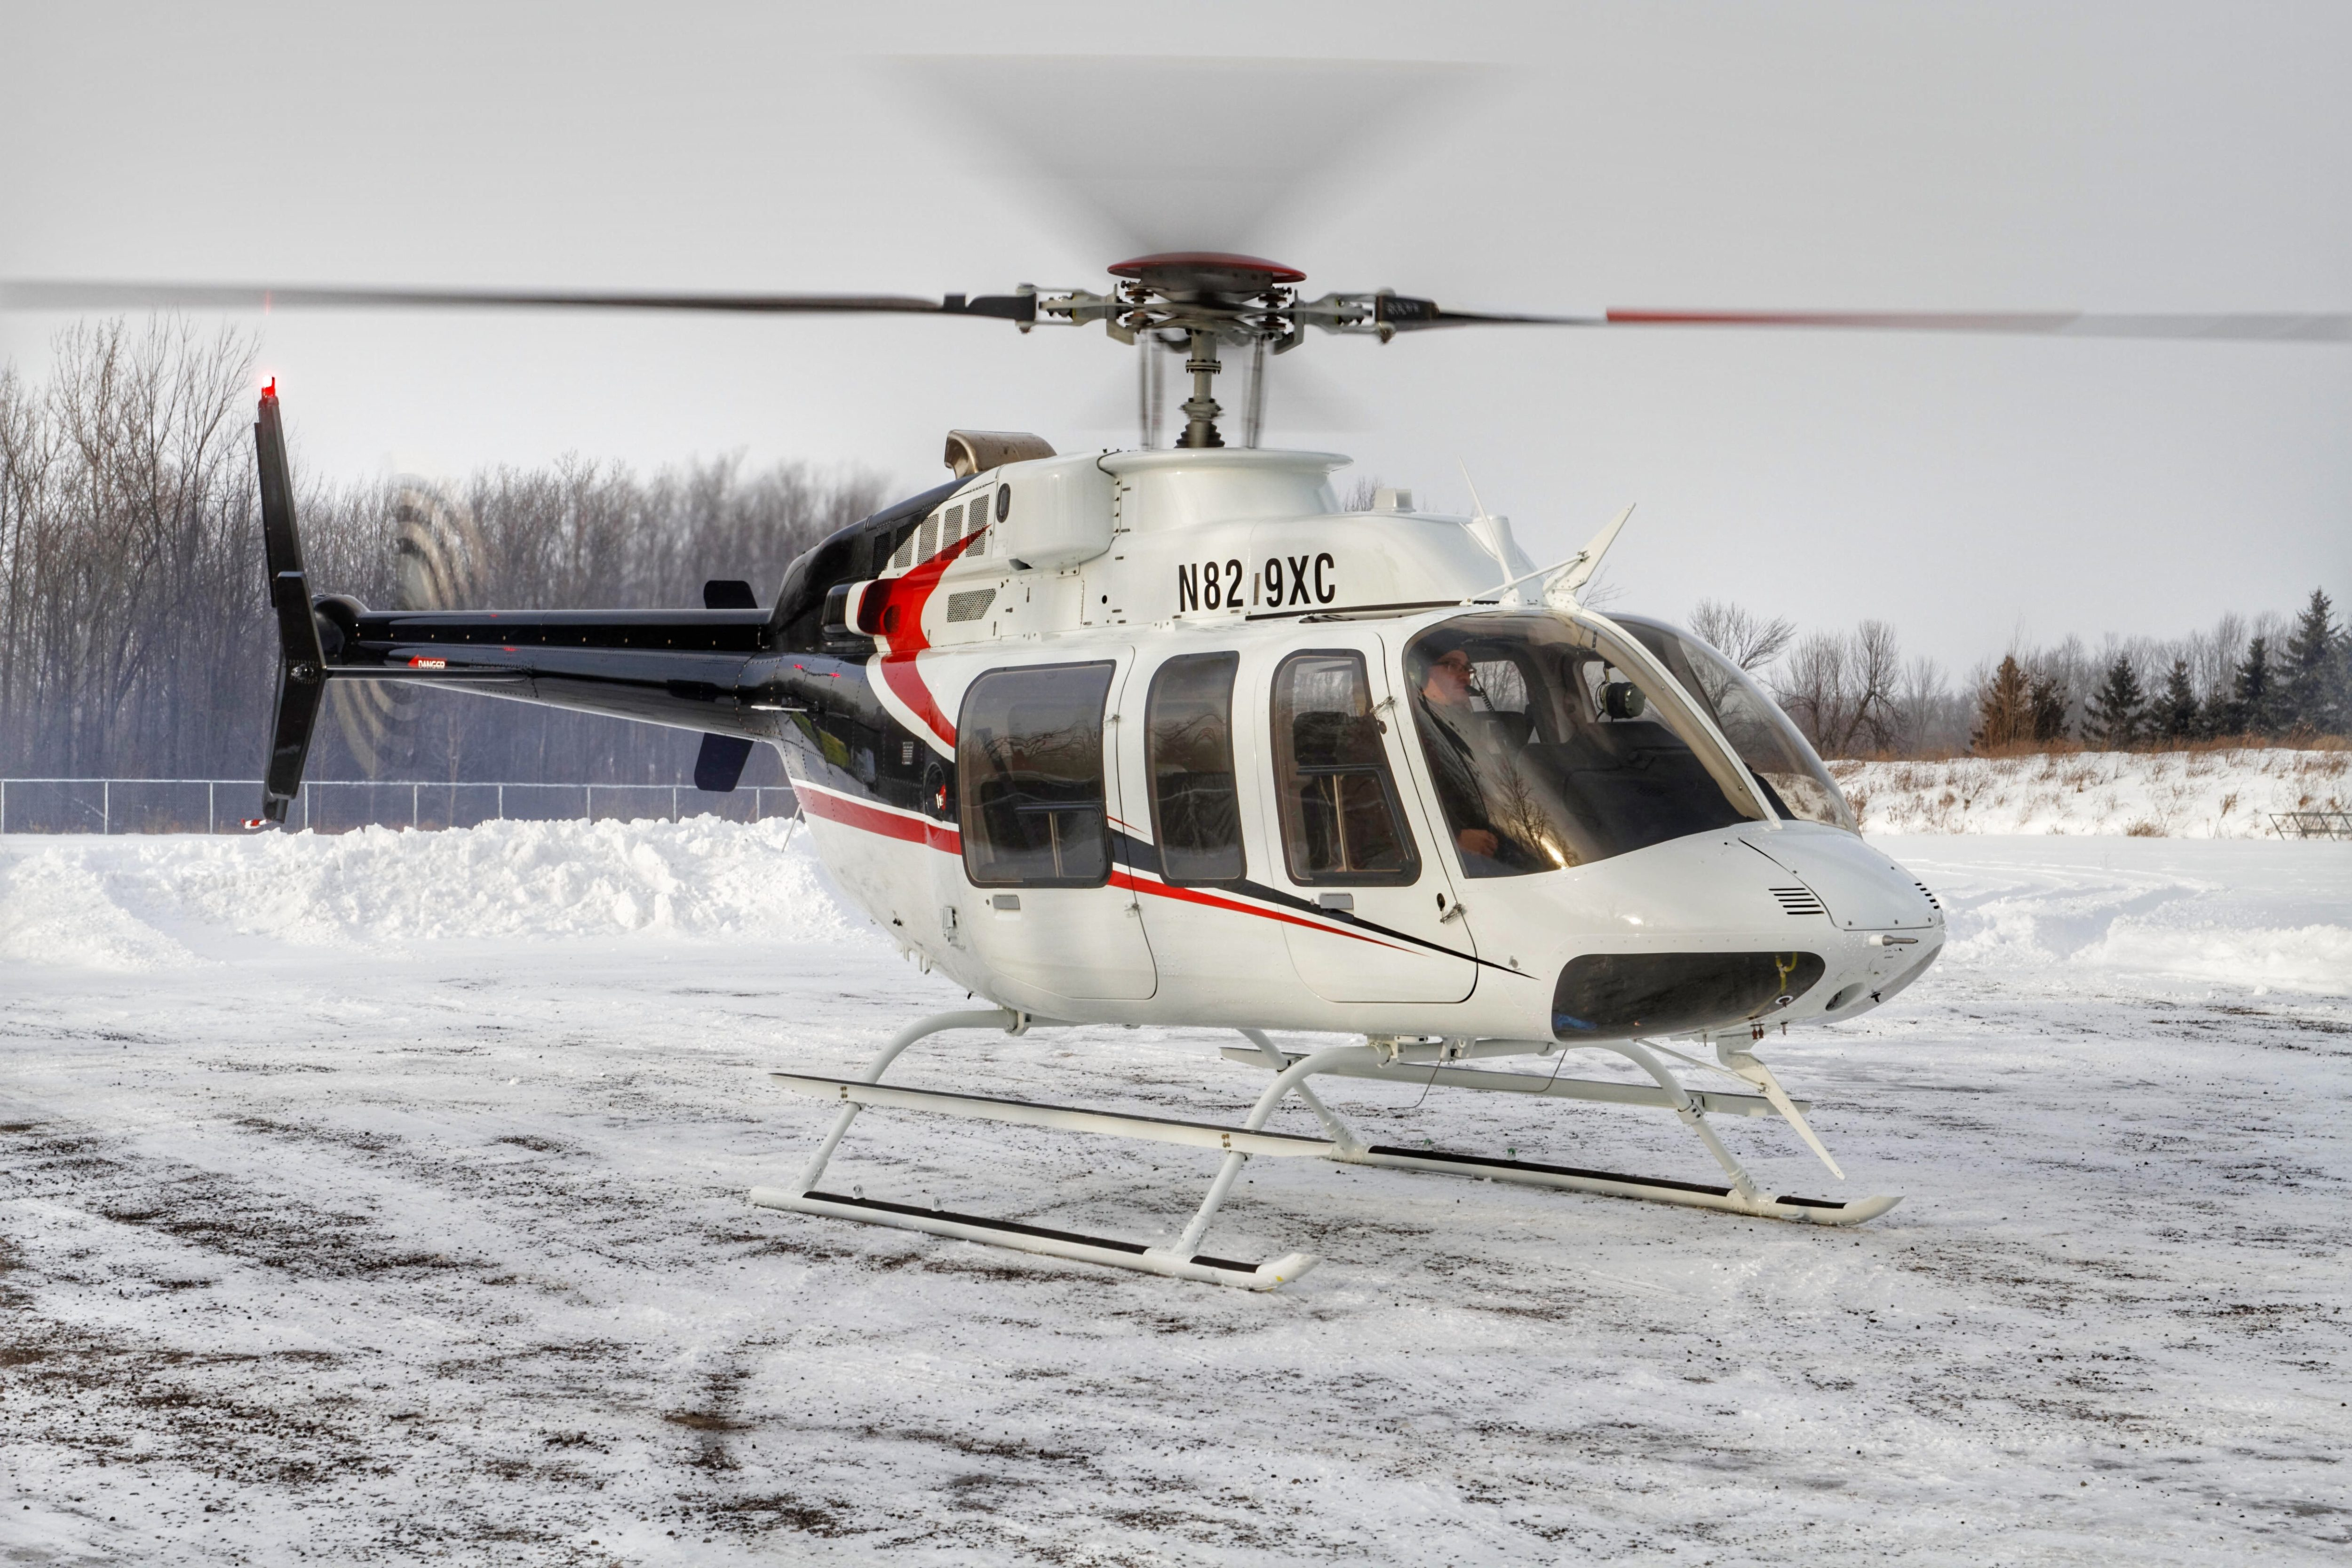 EuroTec makes Heli-Expo announcements - Skies Mag